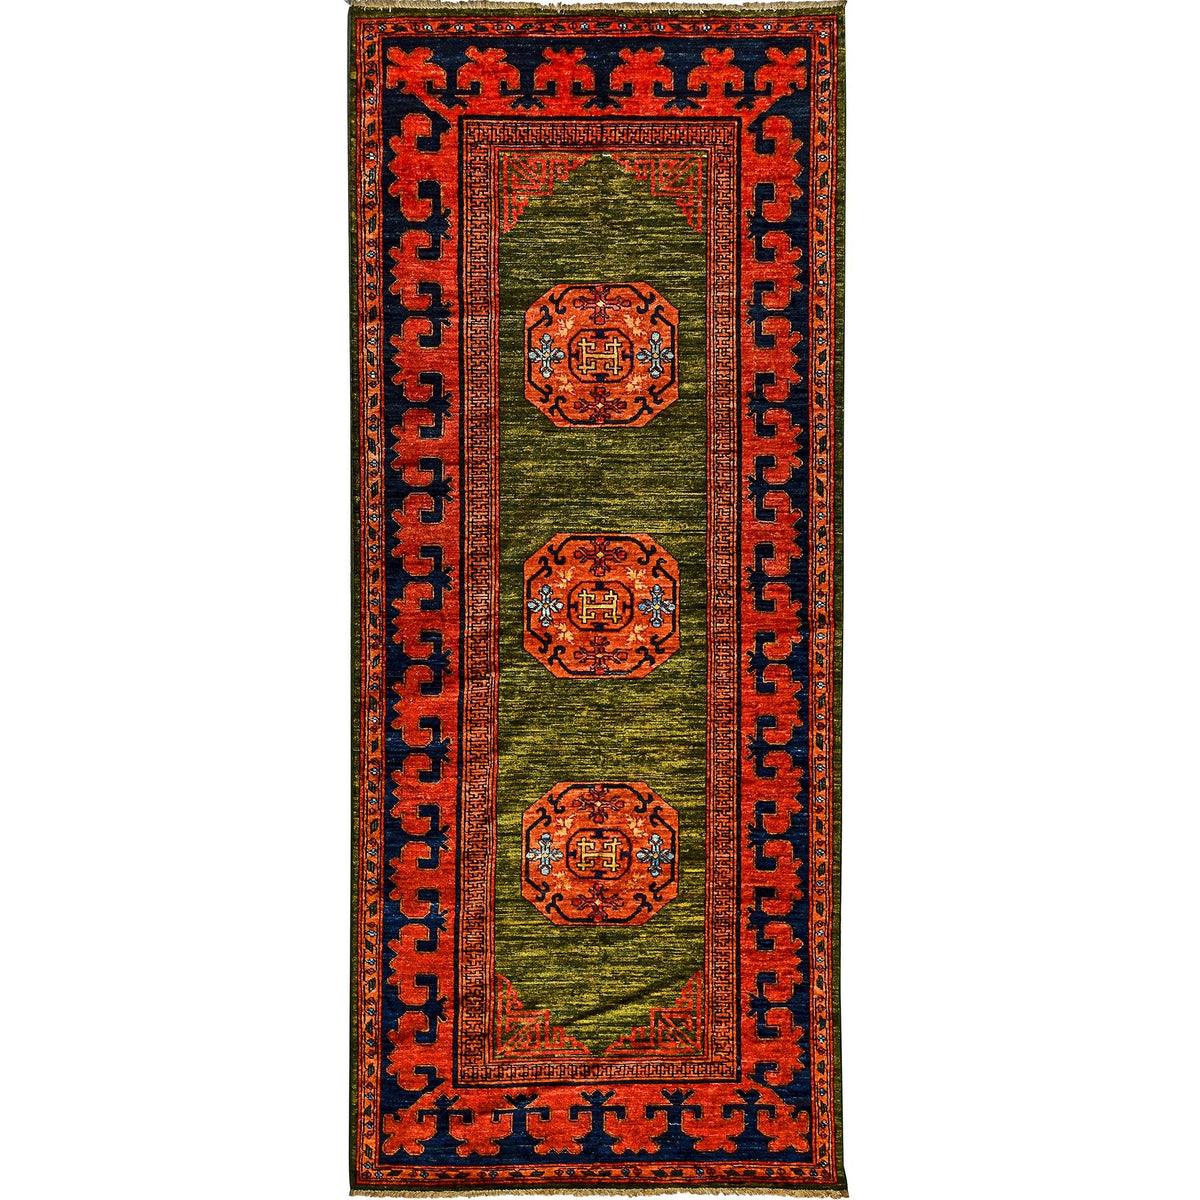 Fine Hand-knotted Tribal Wool Runner 123cm x 296cm Persian-Rug | House-of-Haghi | NewMarket | Auckland | NZ | Handmade Persian Rugs | Hand Knotted Persian Rugs